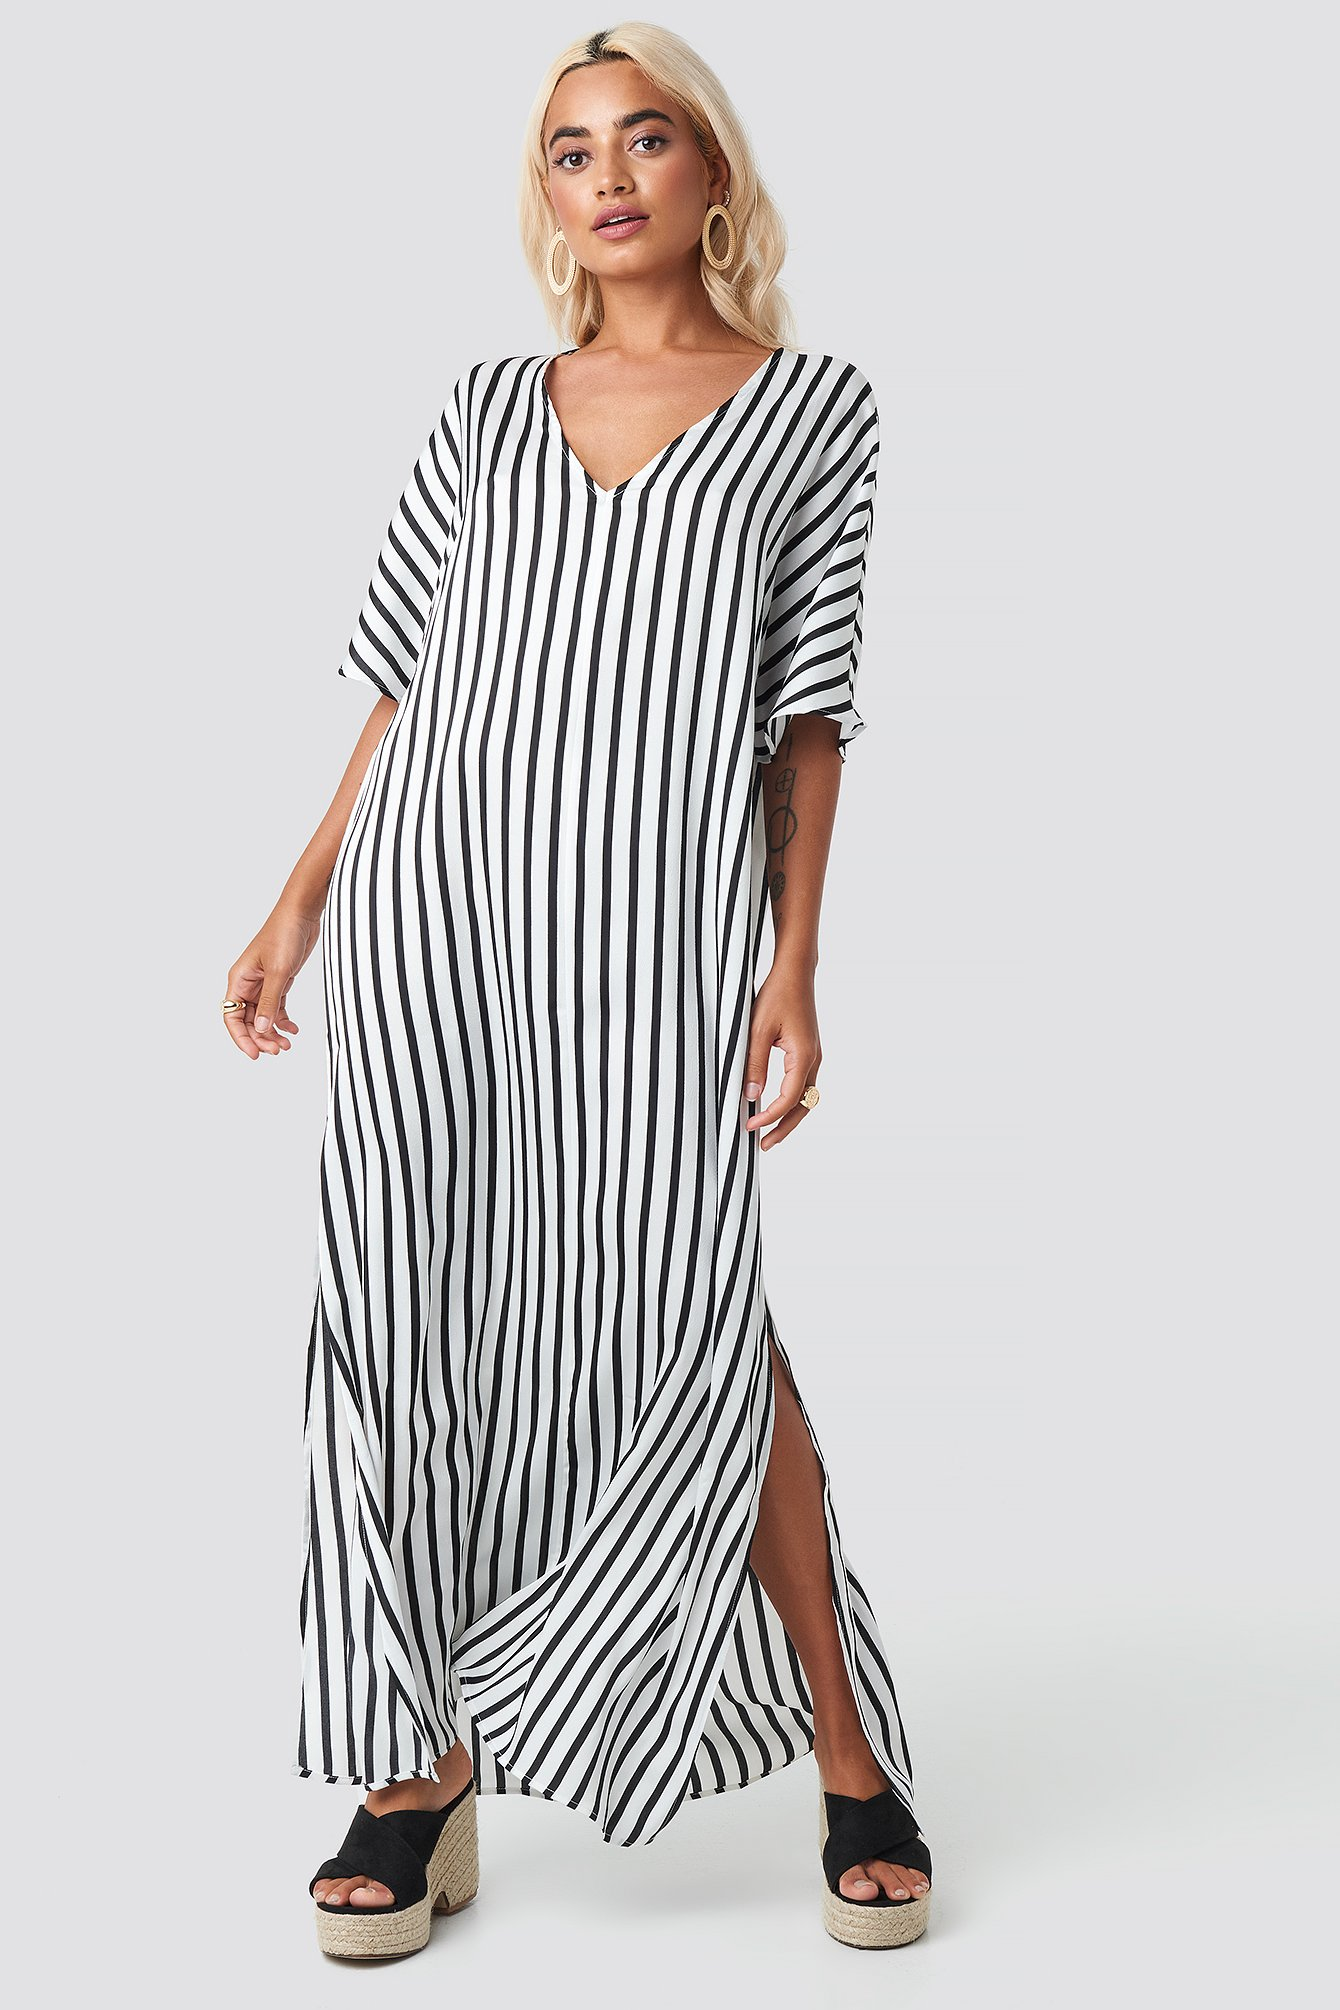 NA-KD Boho Striped V Neck Side Slit Dress - White